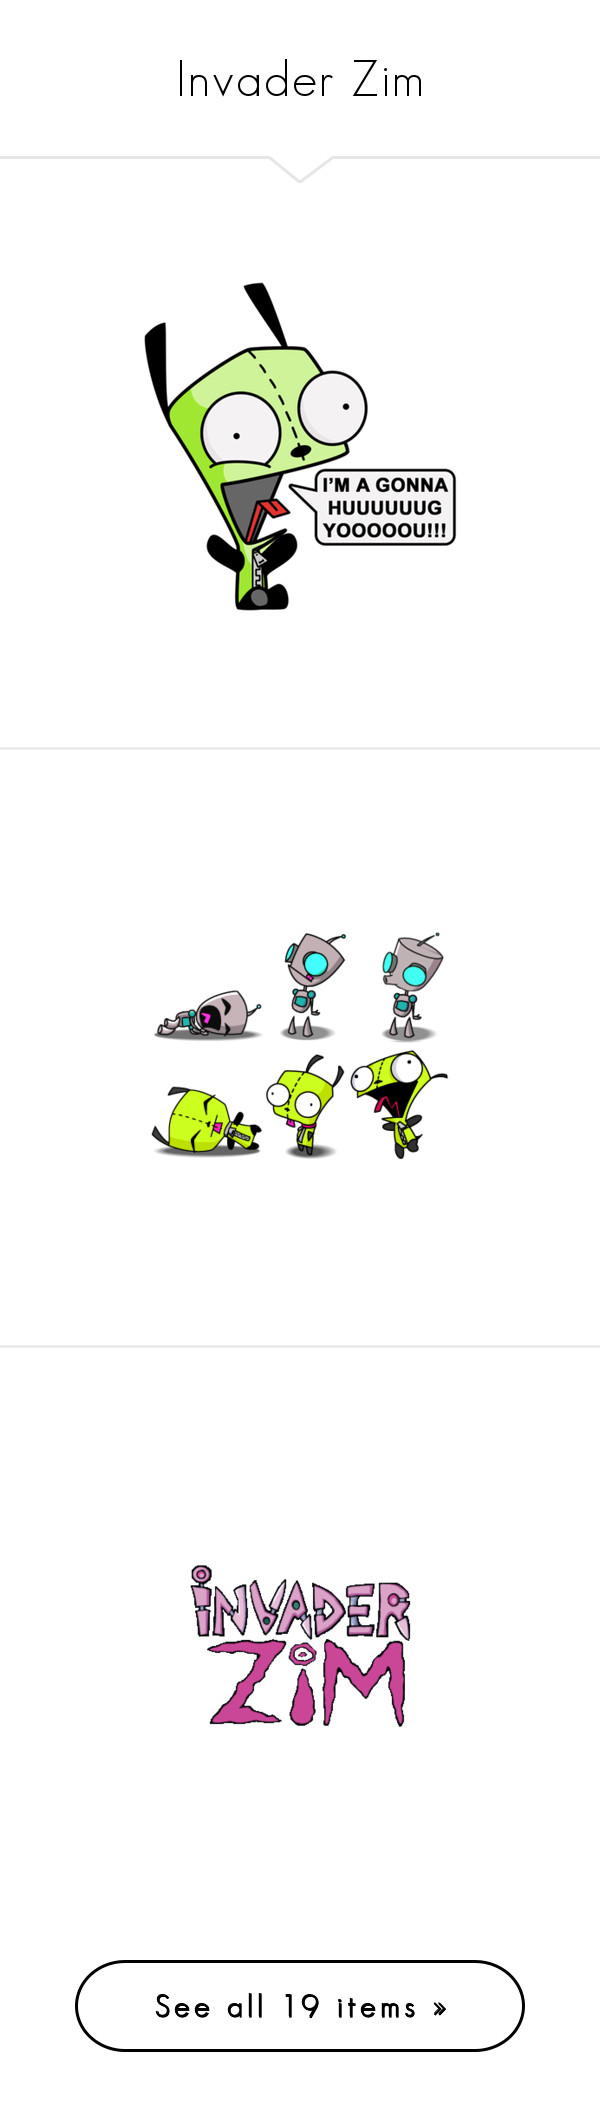 """""""Invader Zim"""" by xscarlett990x ❤ liked on Polyvore featuring gir, backgrounds, fillers, pictures, invader zim, quotes, text, phrase, saying and random"""